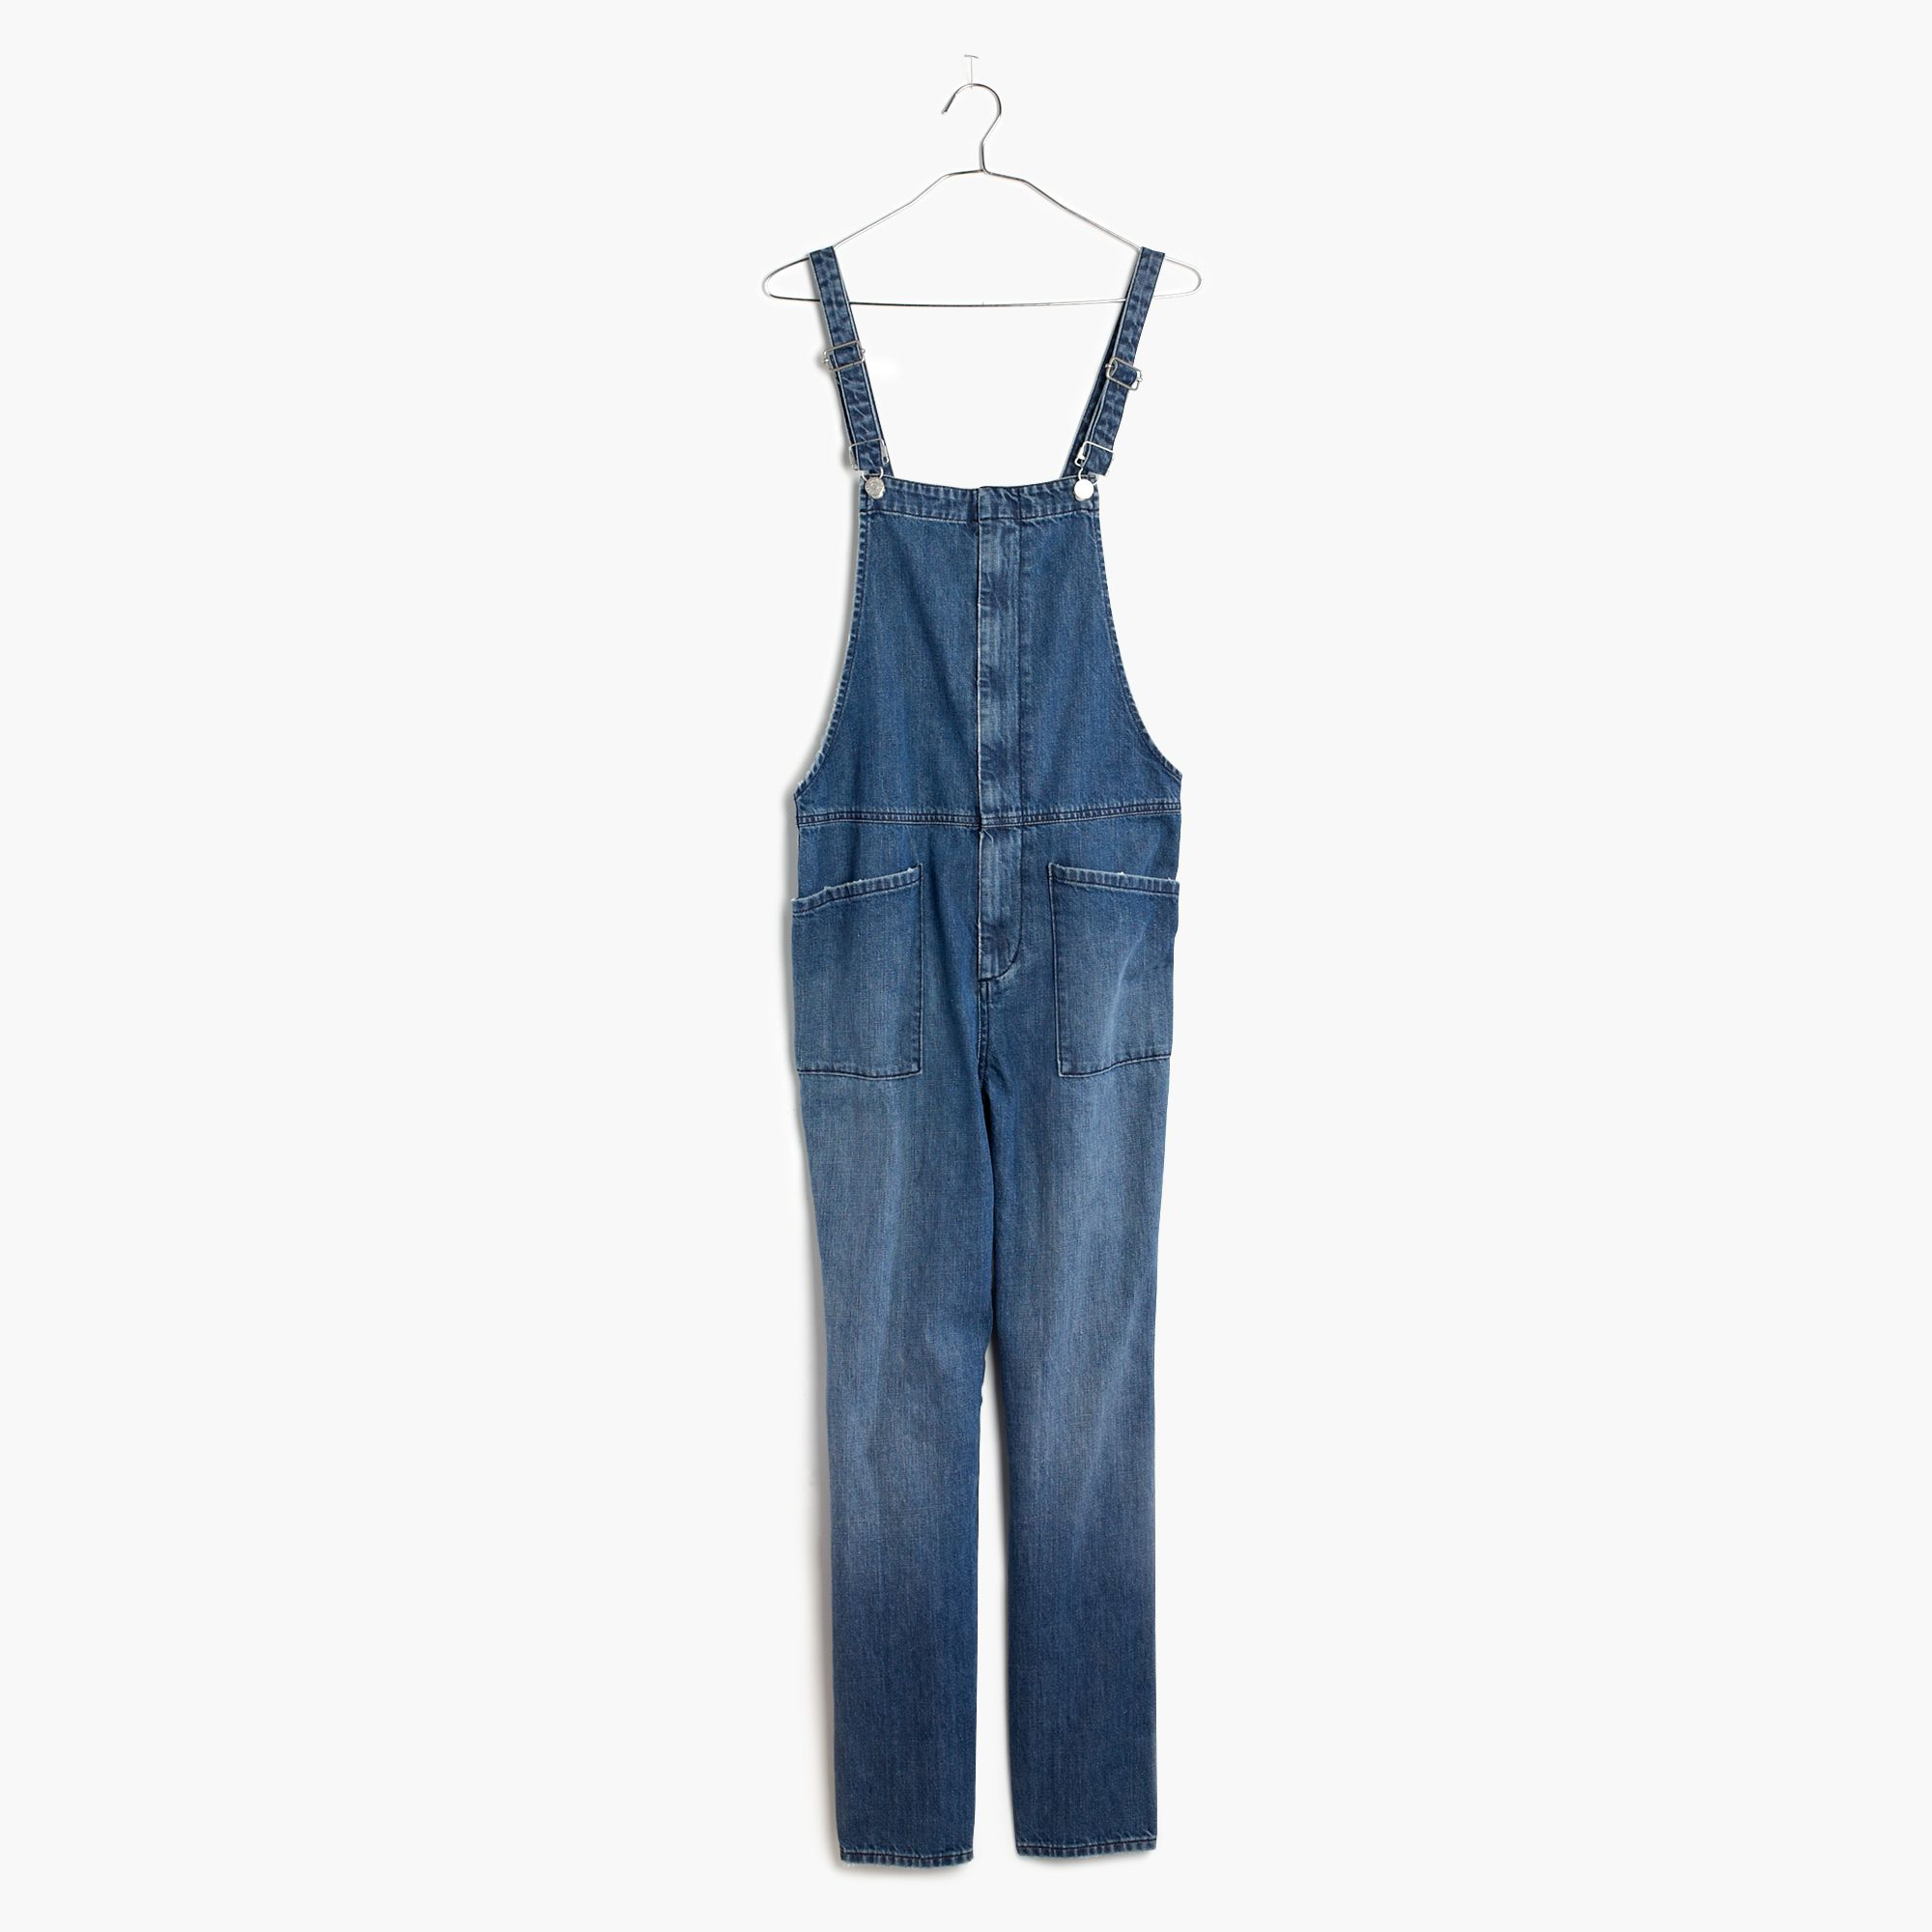 40099005661 Lyst - Madewell Dungaree Overalls in Blue